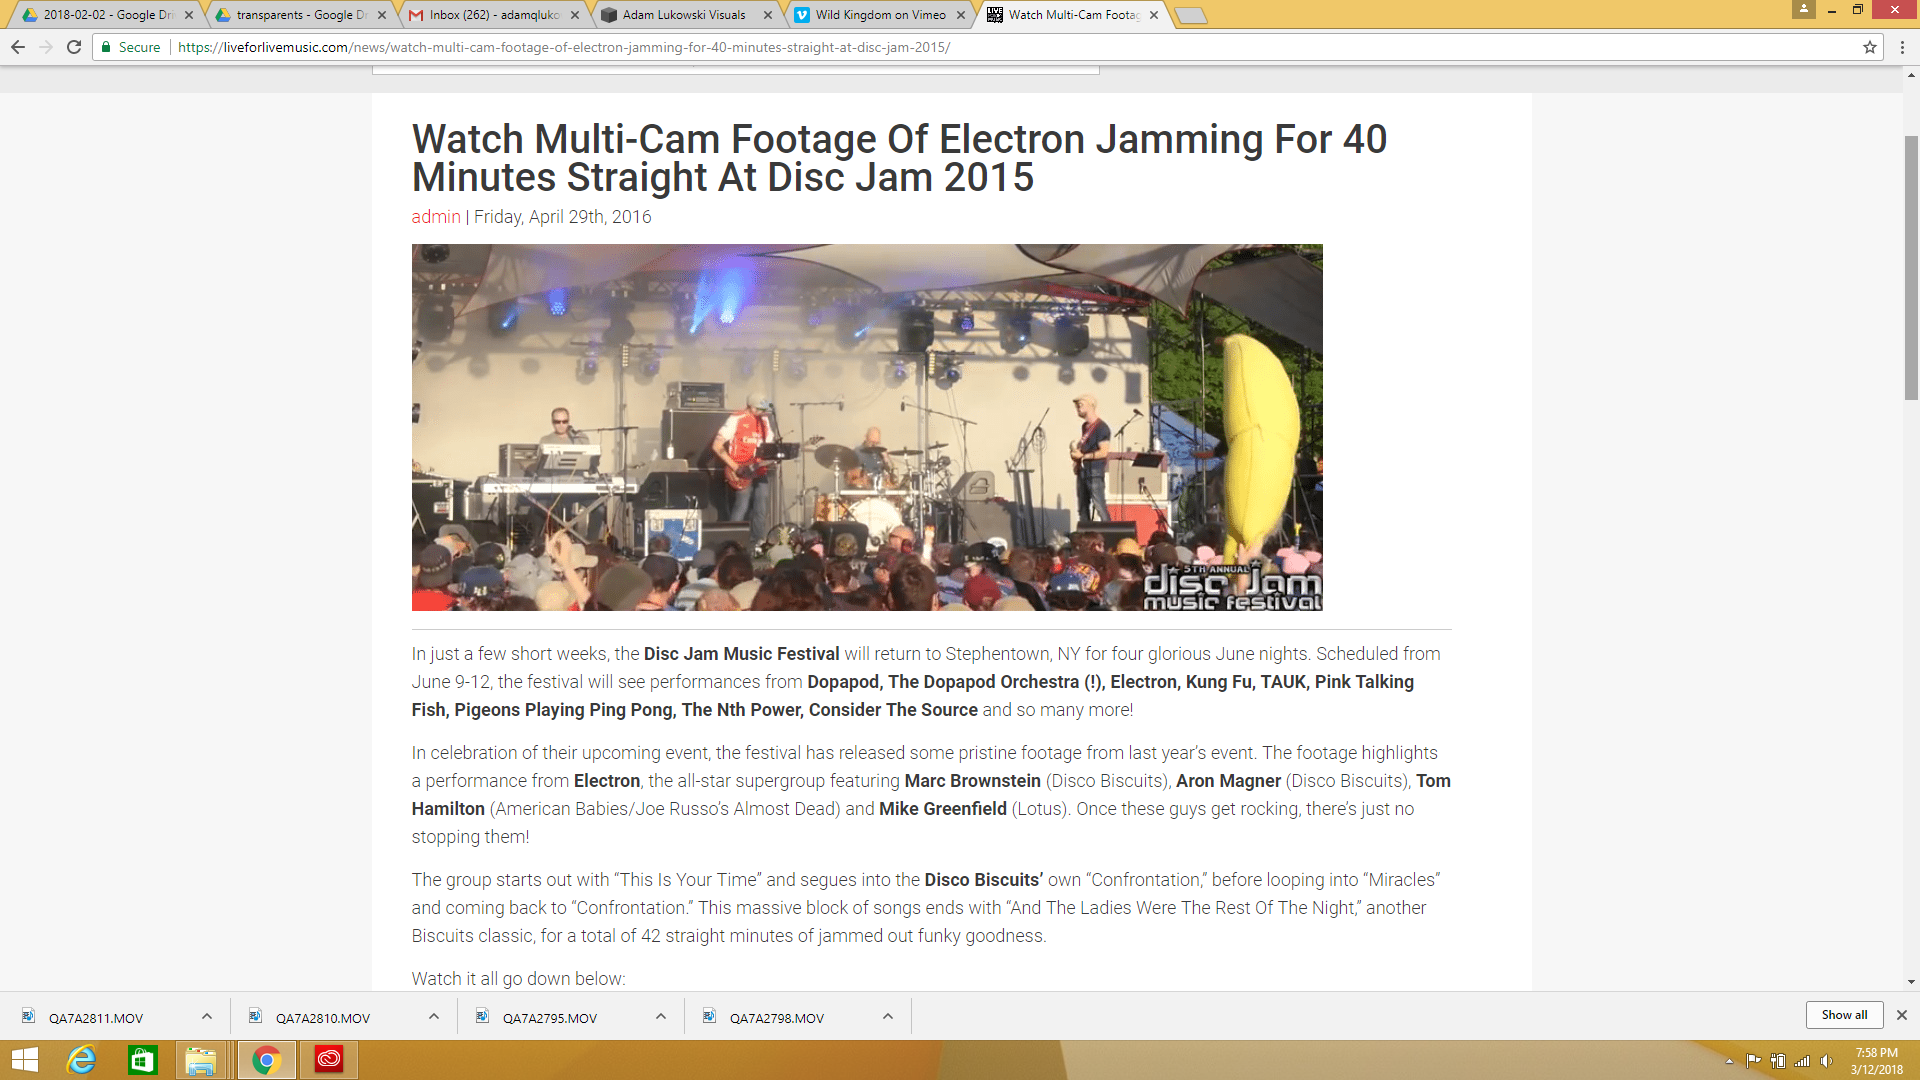 https://liveforlivemusic.com/news/watch-multi-cam-footage-of-electron-jamming-for-40-minutes-straight-at-disc-jam-2015/ -